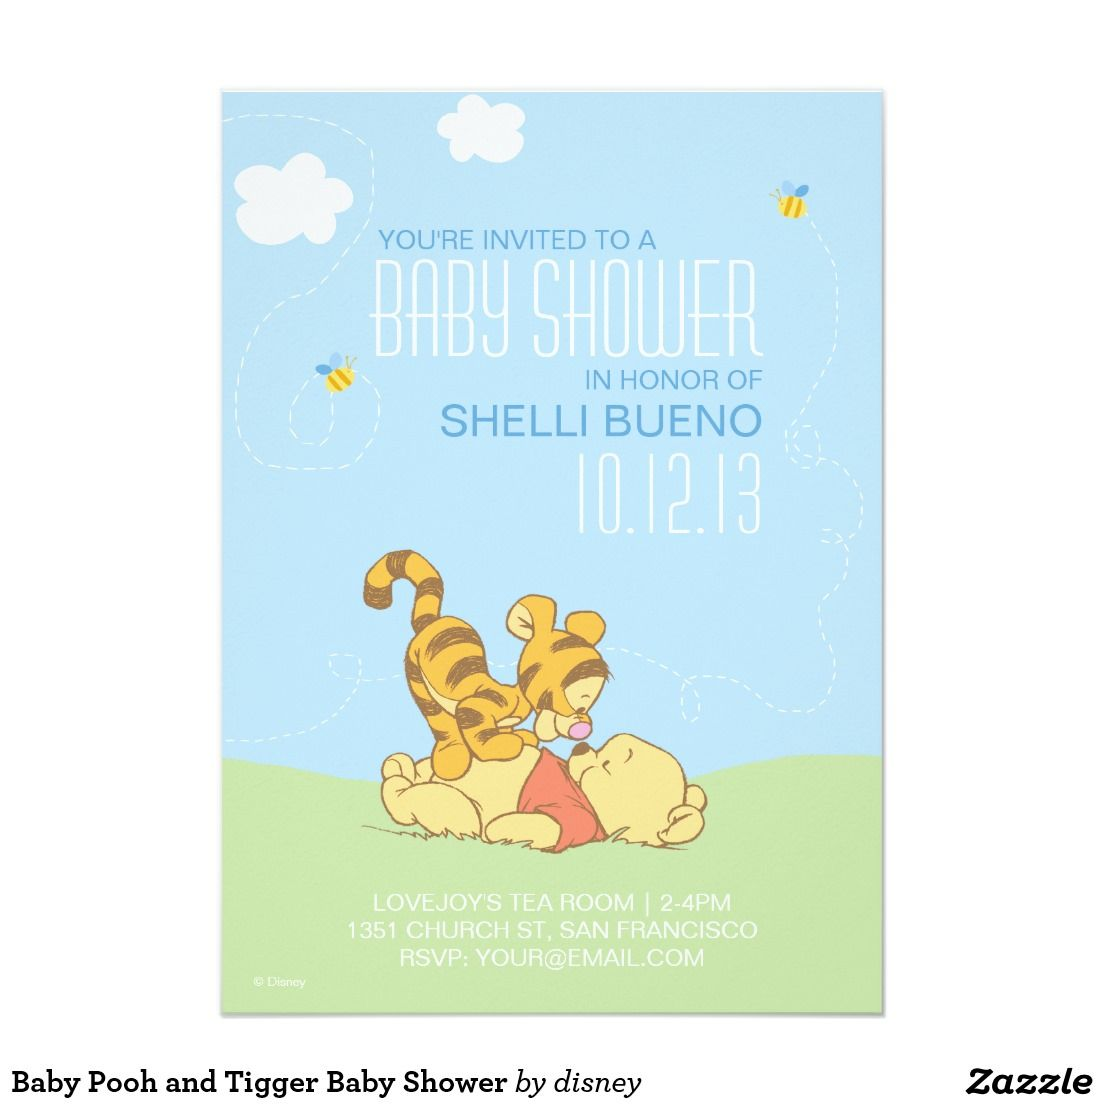 Personalized Disney baby shower invitations. Featuring Baby Pooh and ...